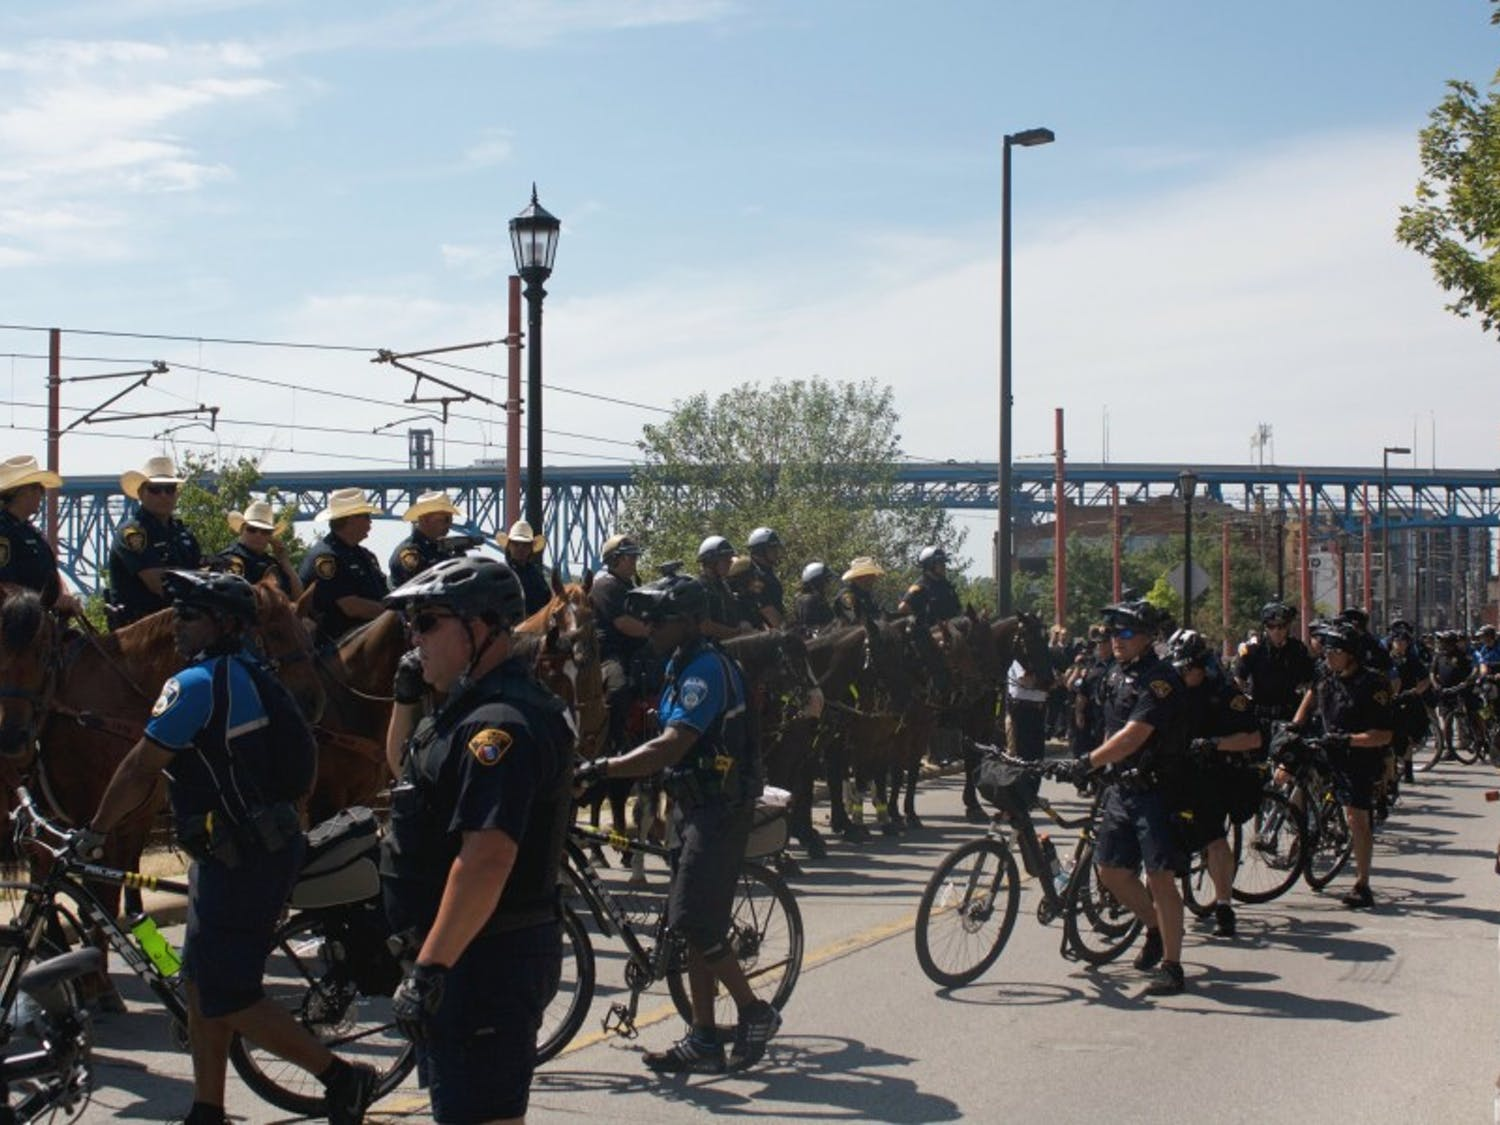 Local, state and federal law enforcement officials had to separate two groups of protesters after an argument broke out in downtown Cleveland just outside the Republican National Convention.